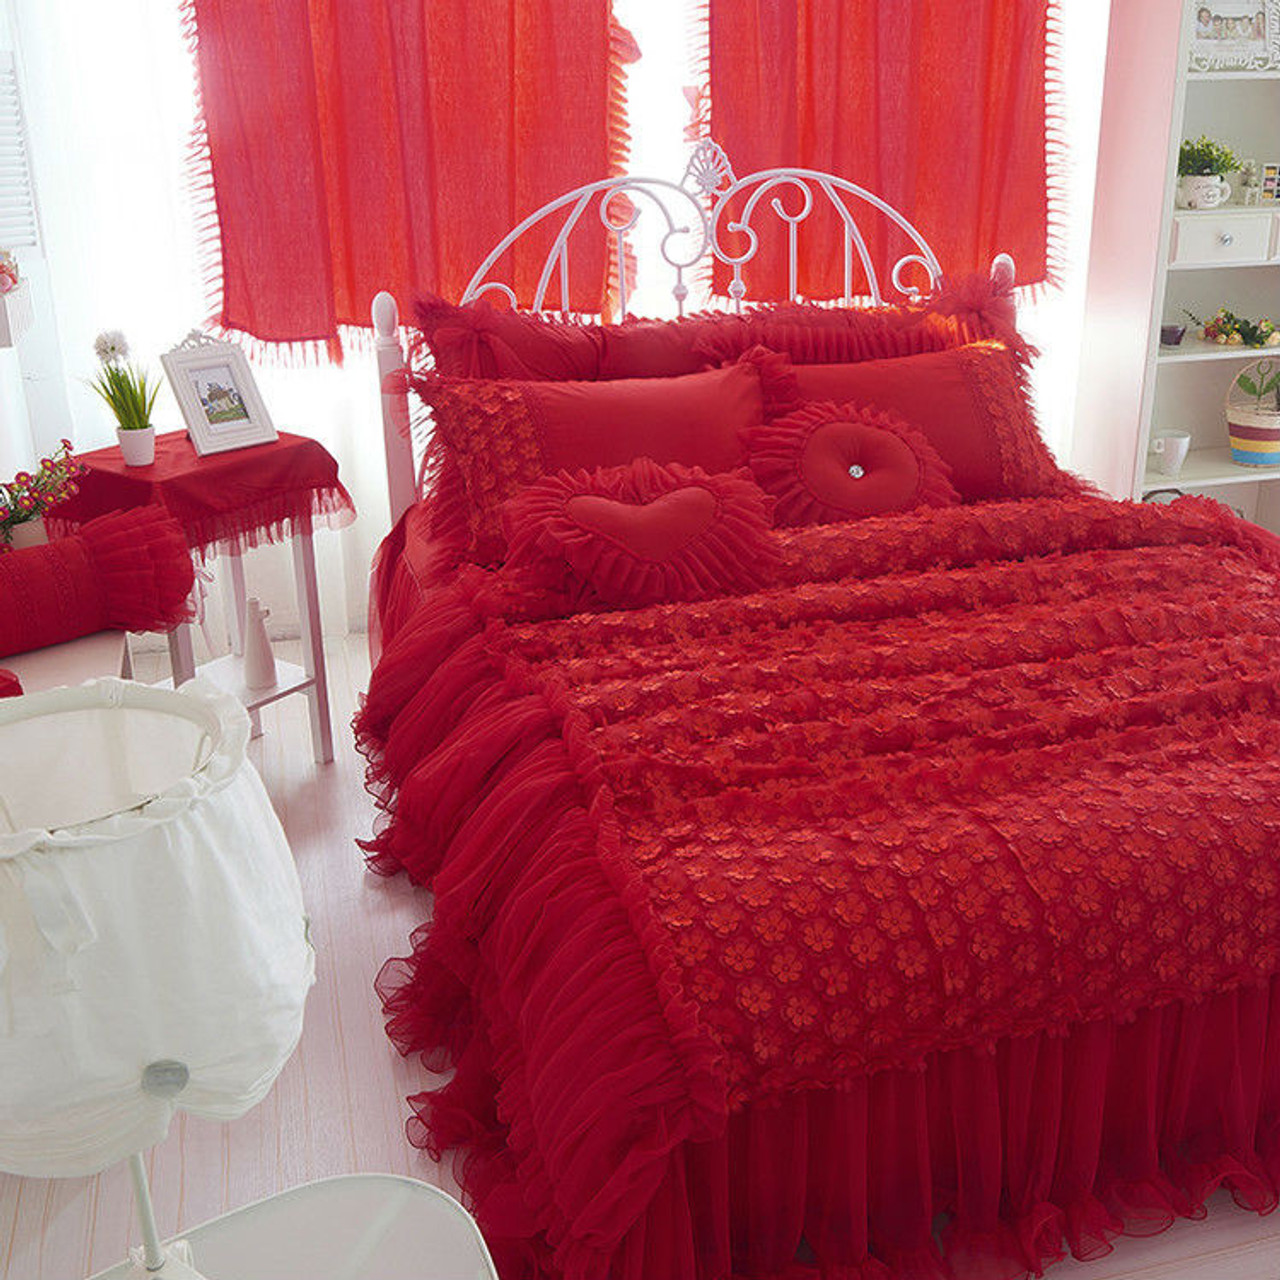 Wedding Red Color Luxury Lace Bedding Sets Twin Full Queen King Size Duvet Cover Bedskirt Pillow Sham 4pc Bedclothes Set Onshopdeals Com